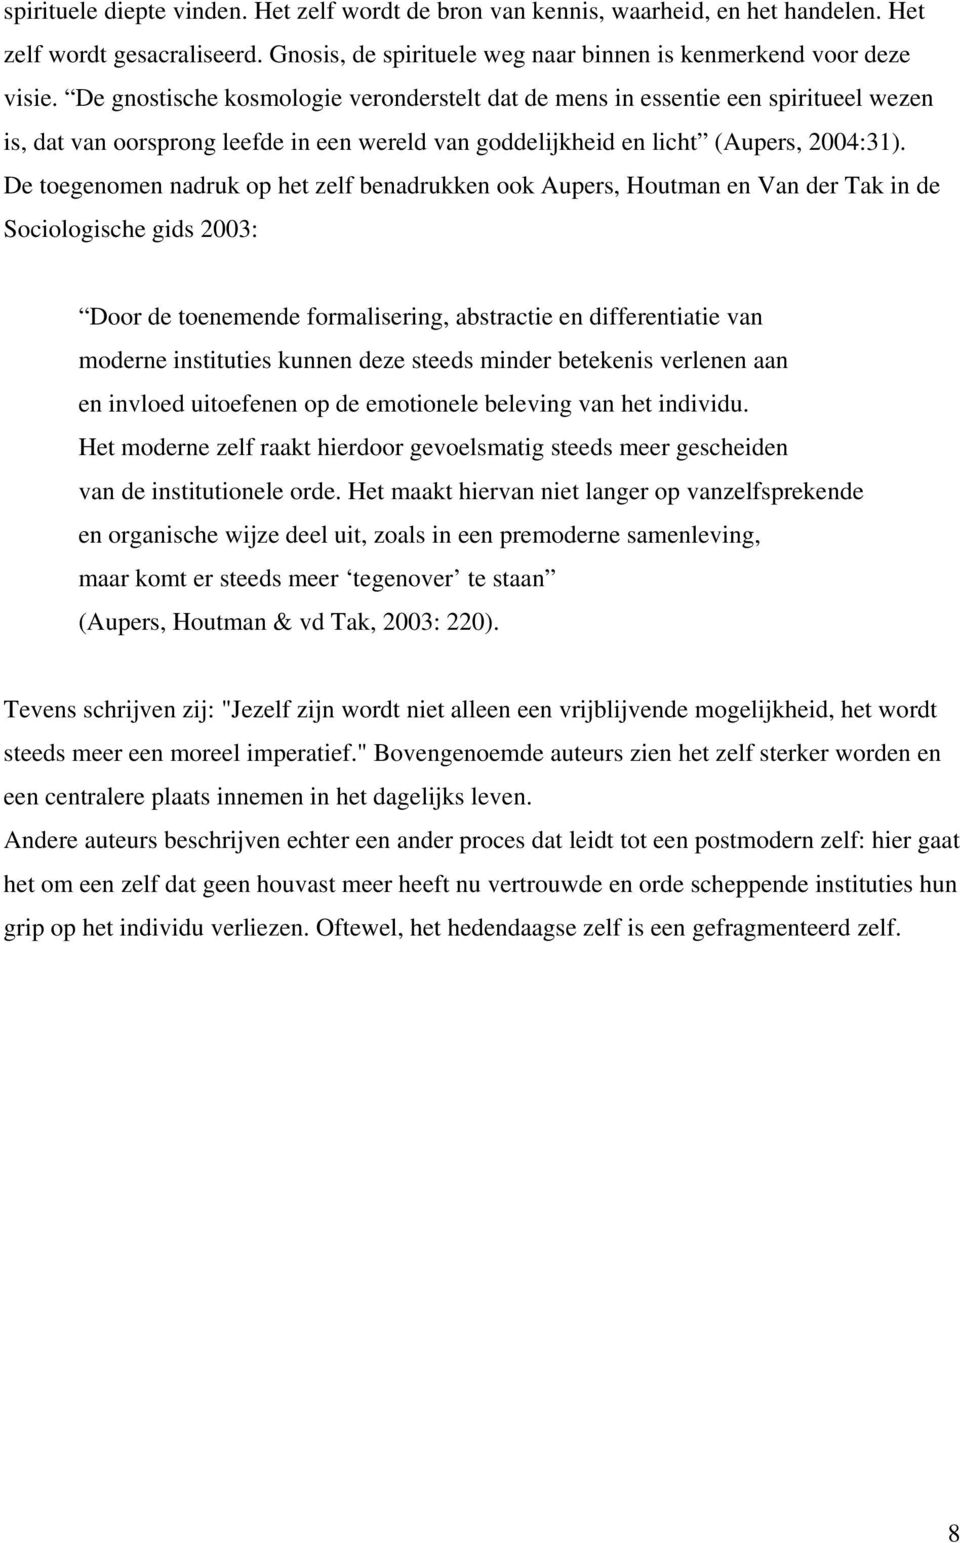 De toegenomen nadruk op het zelf benadrukken ook Aupers, Houtman en Van der Tak in de Sociologische gids 2003: Door de toenemende formalisering, abstractie en differentiatie van moderne instituties